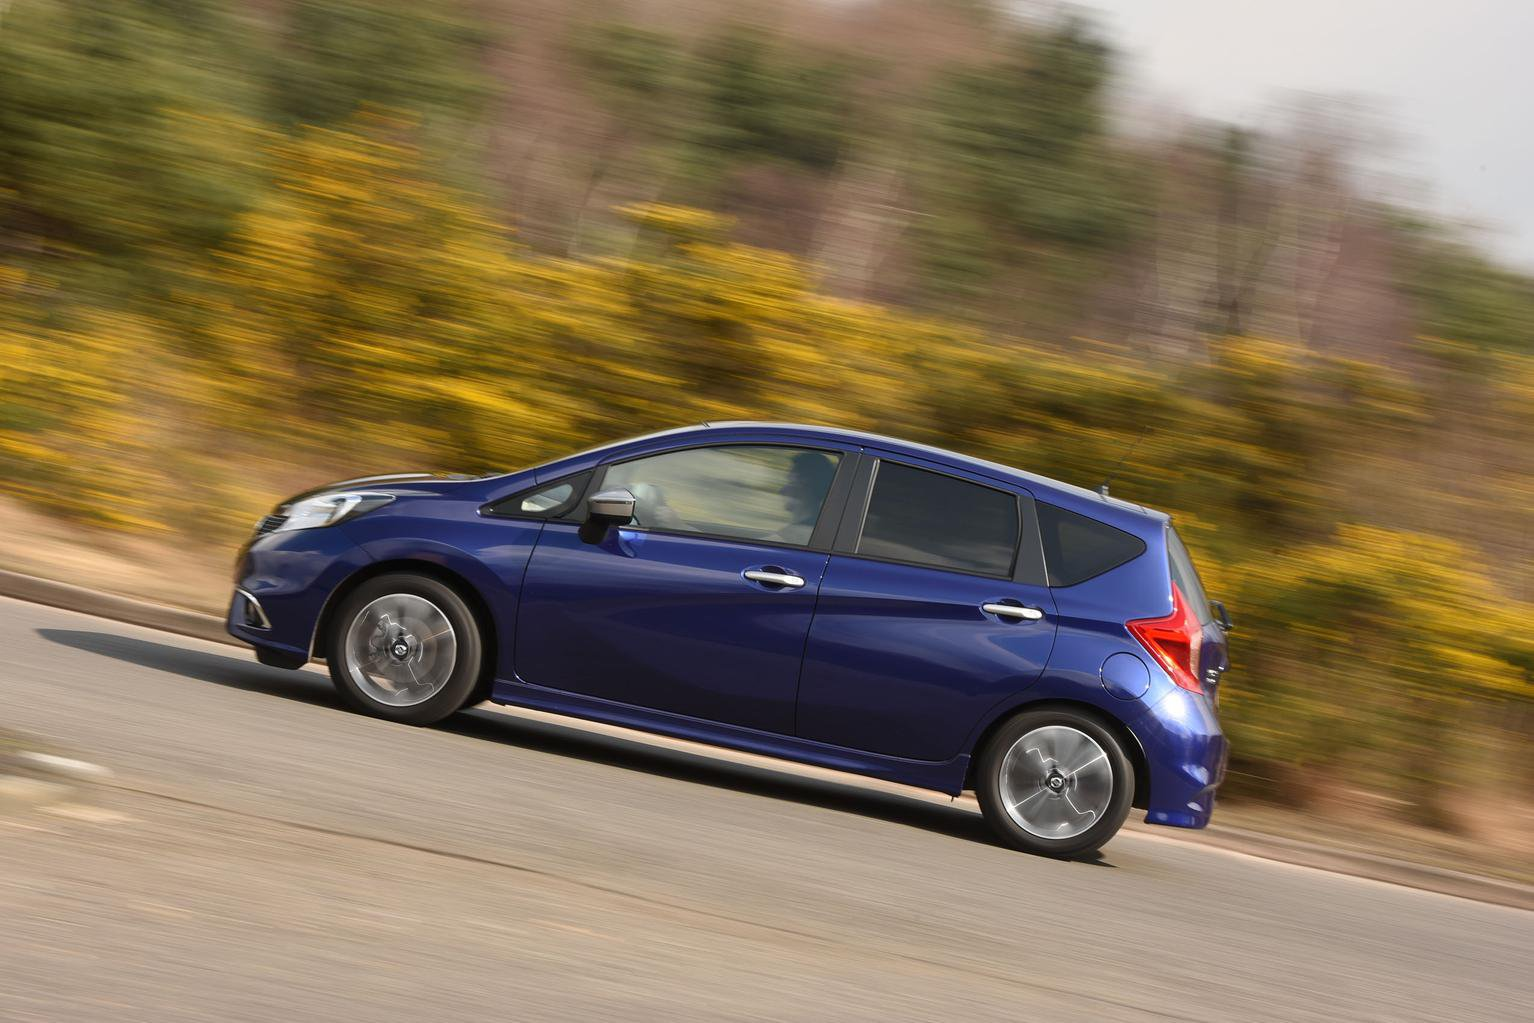 7 reasons to buy a Nissan Note